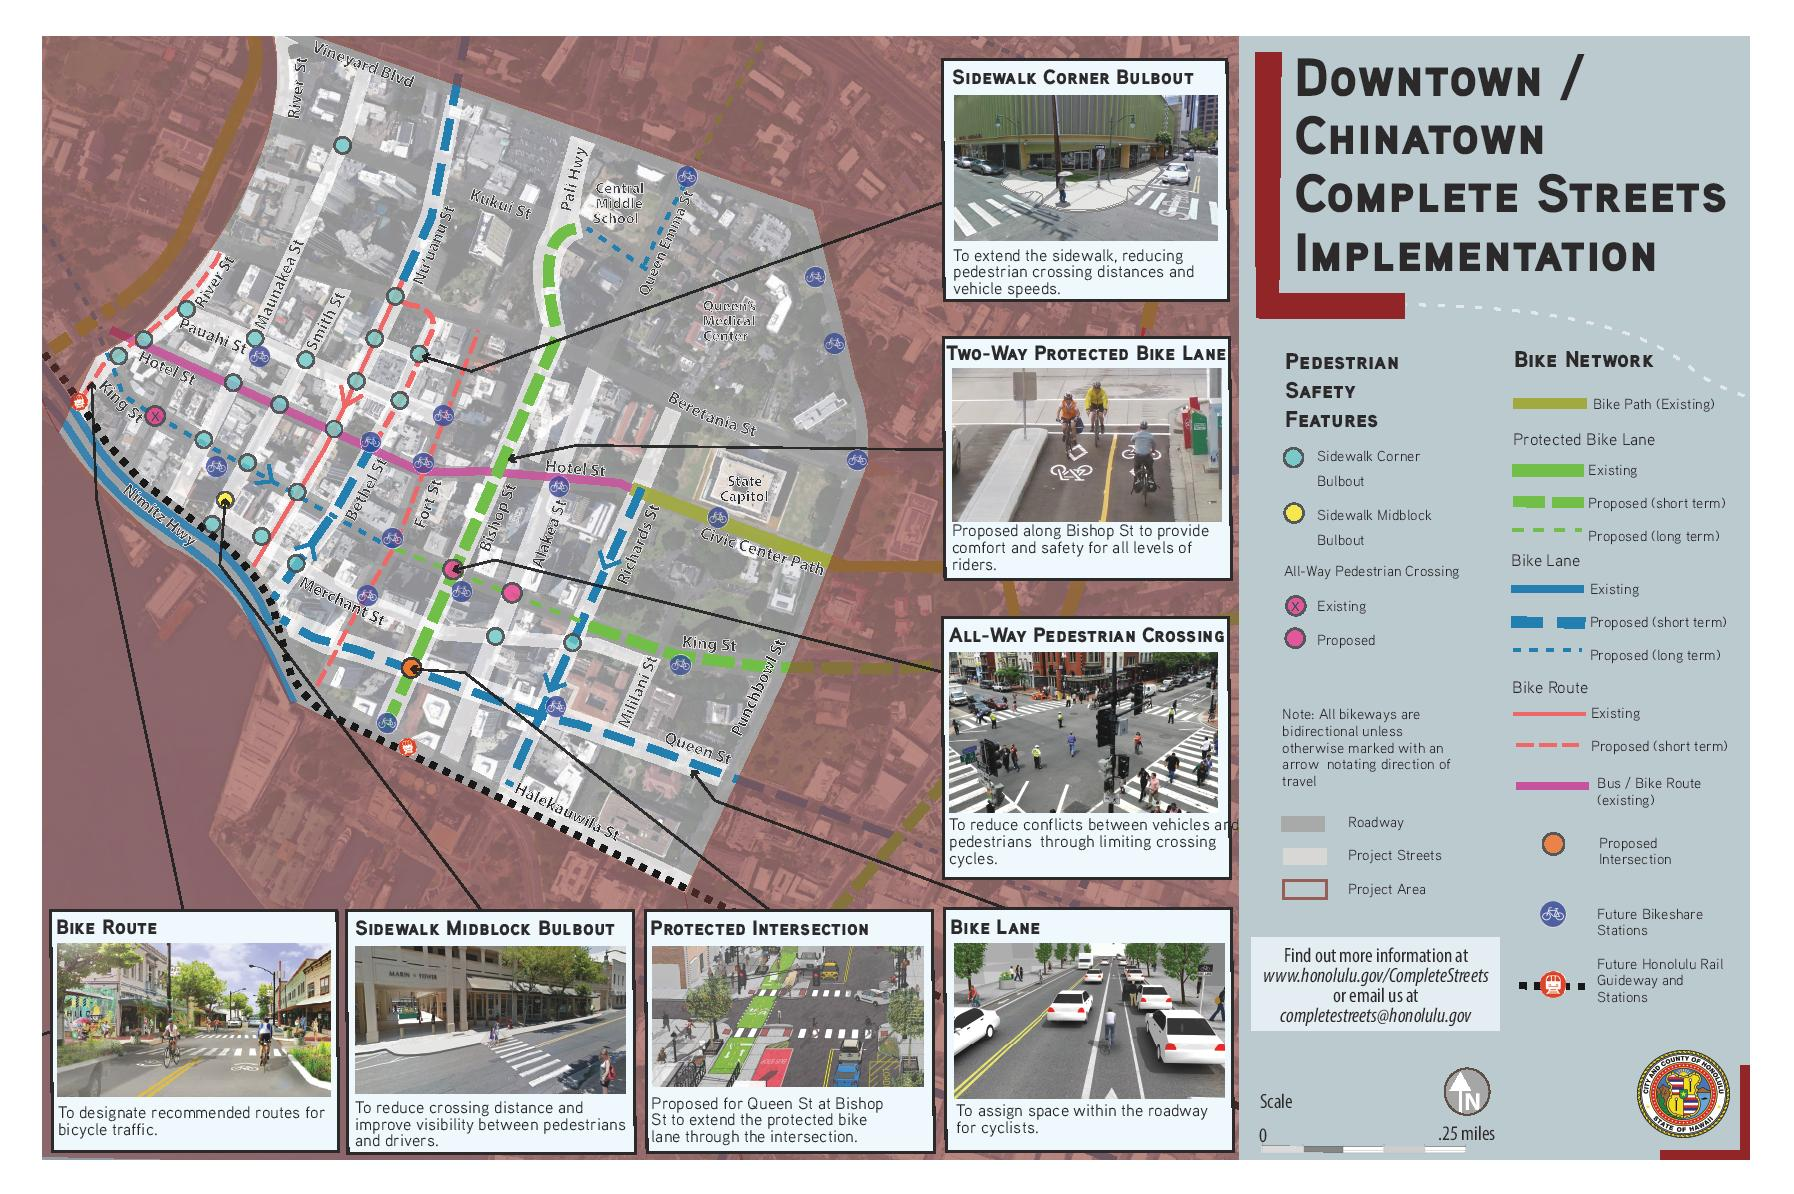 170201_Downtown_Chinatown_CS_Map_FactSheet_-page-001.jpg